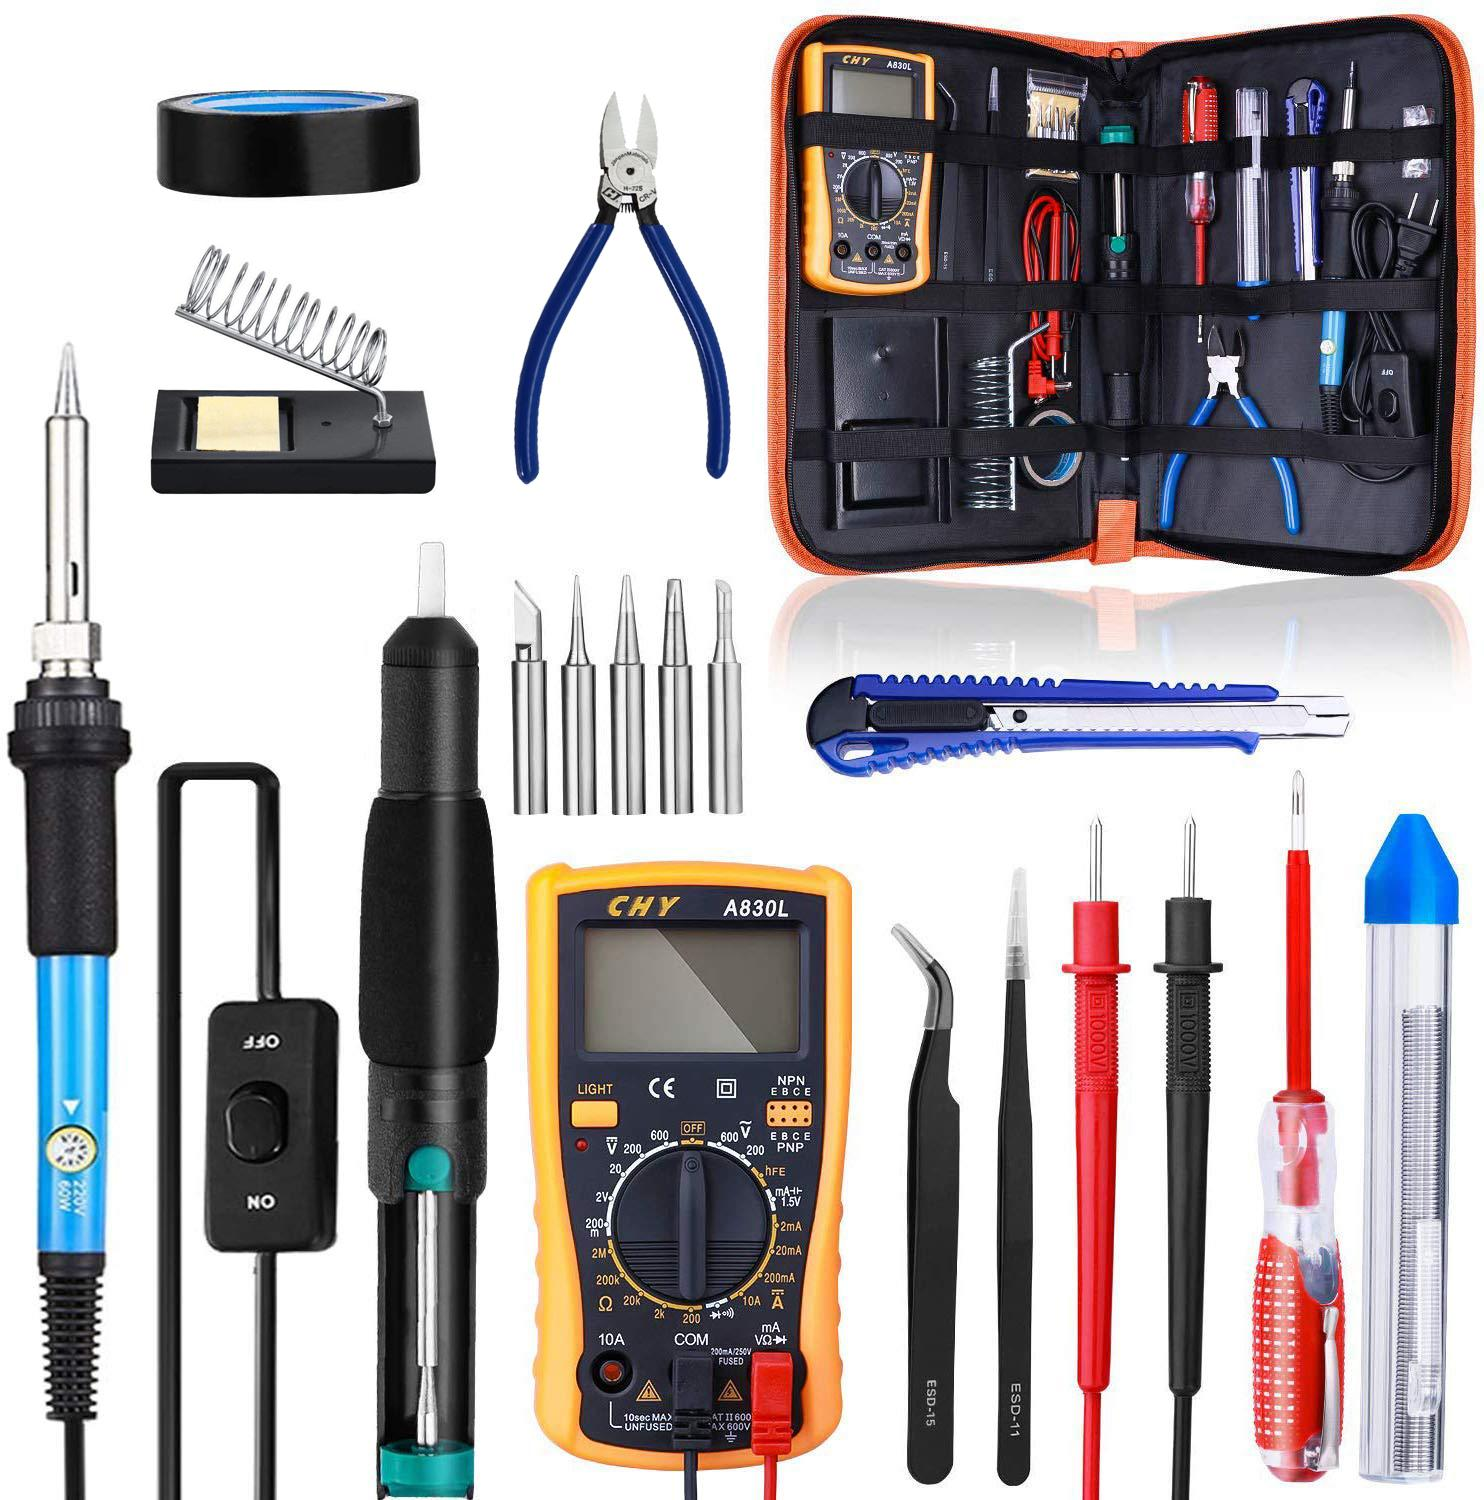 Soldering Iron Kit, 60W 220V/110V Welding Tool Adjustable Temperature Electric Soldering Iron Set Welding Solder StationElectric Soldering Irons   - AliExpress